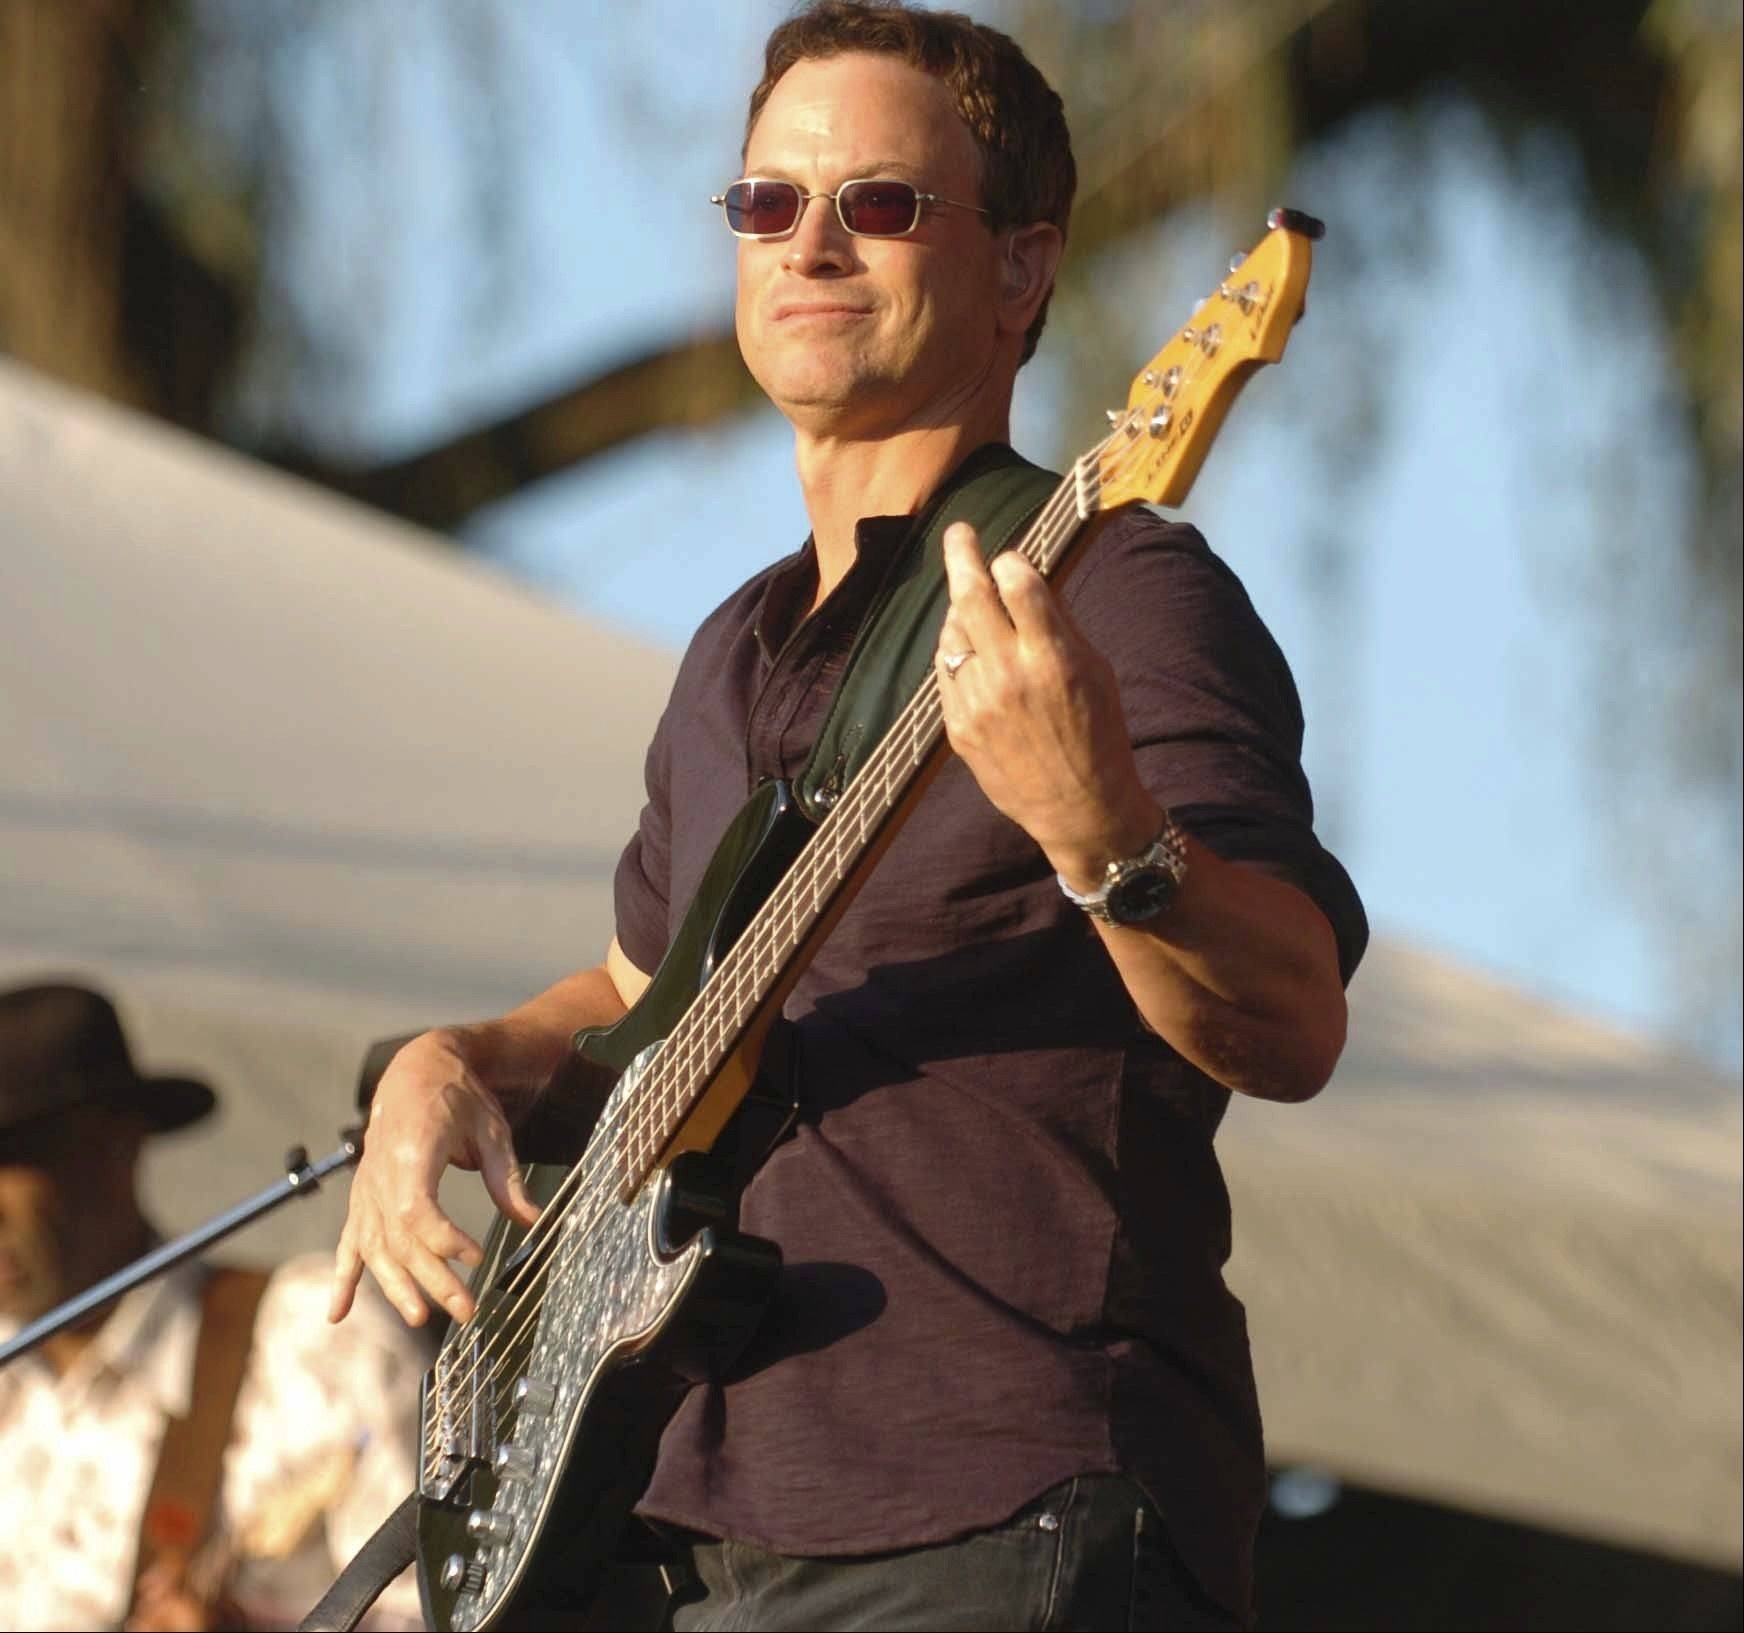 Actor Gary Sinise has made it his passion to advocate for members of the military and their families. He will once again perform at Operation Support Our Troops-America's Rockin' for the Troops event with the Lt. Dan Band Saturday, July 16.